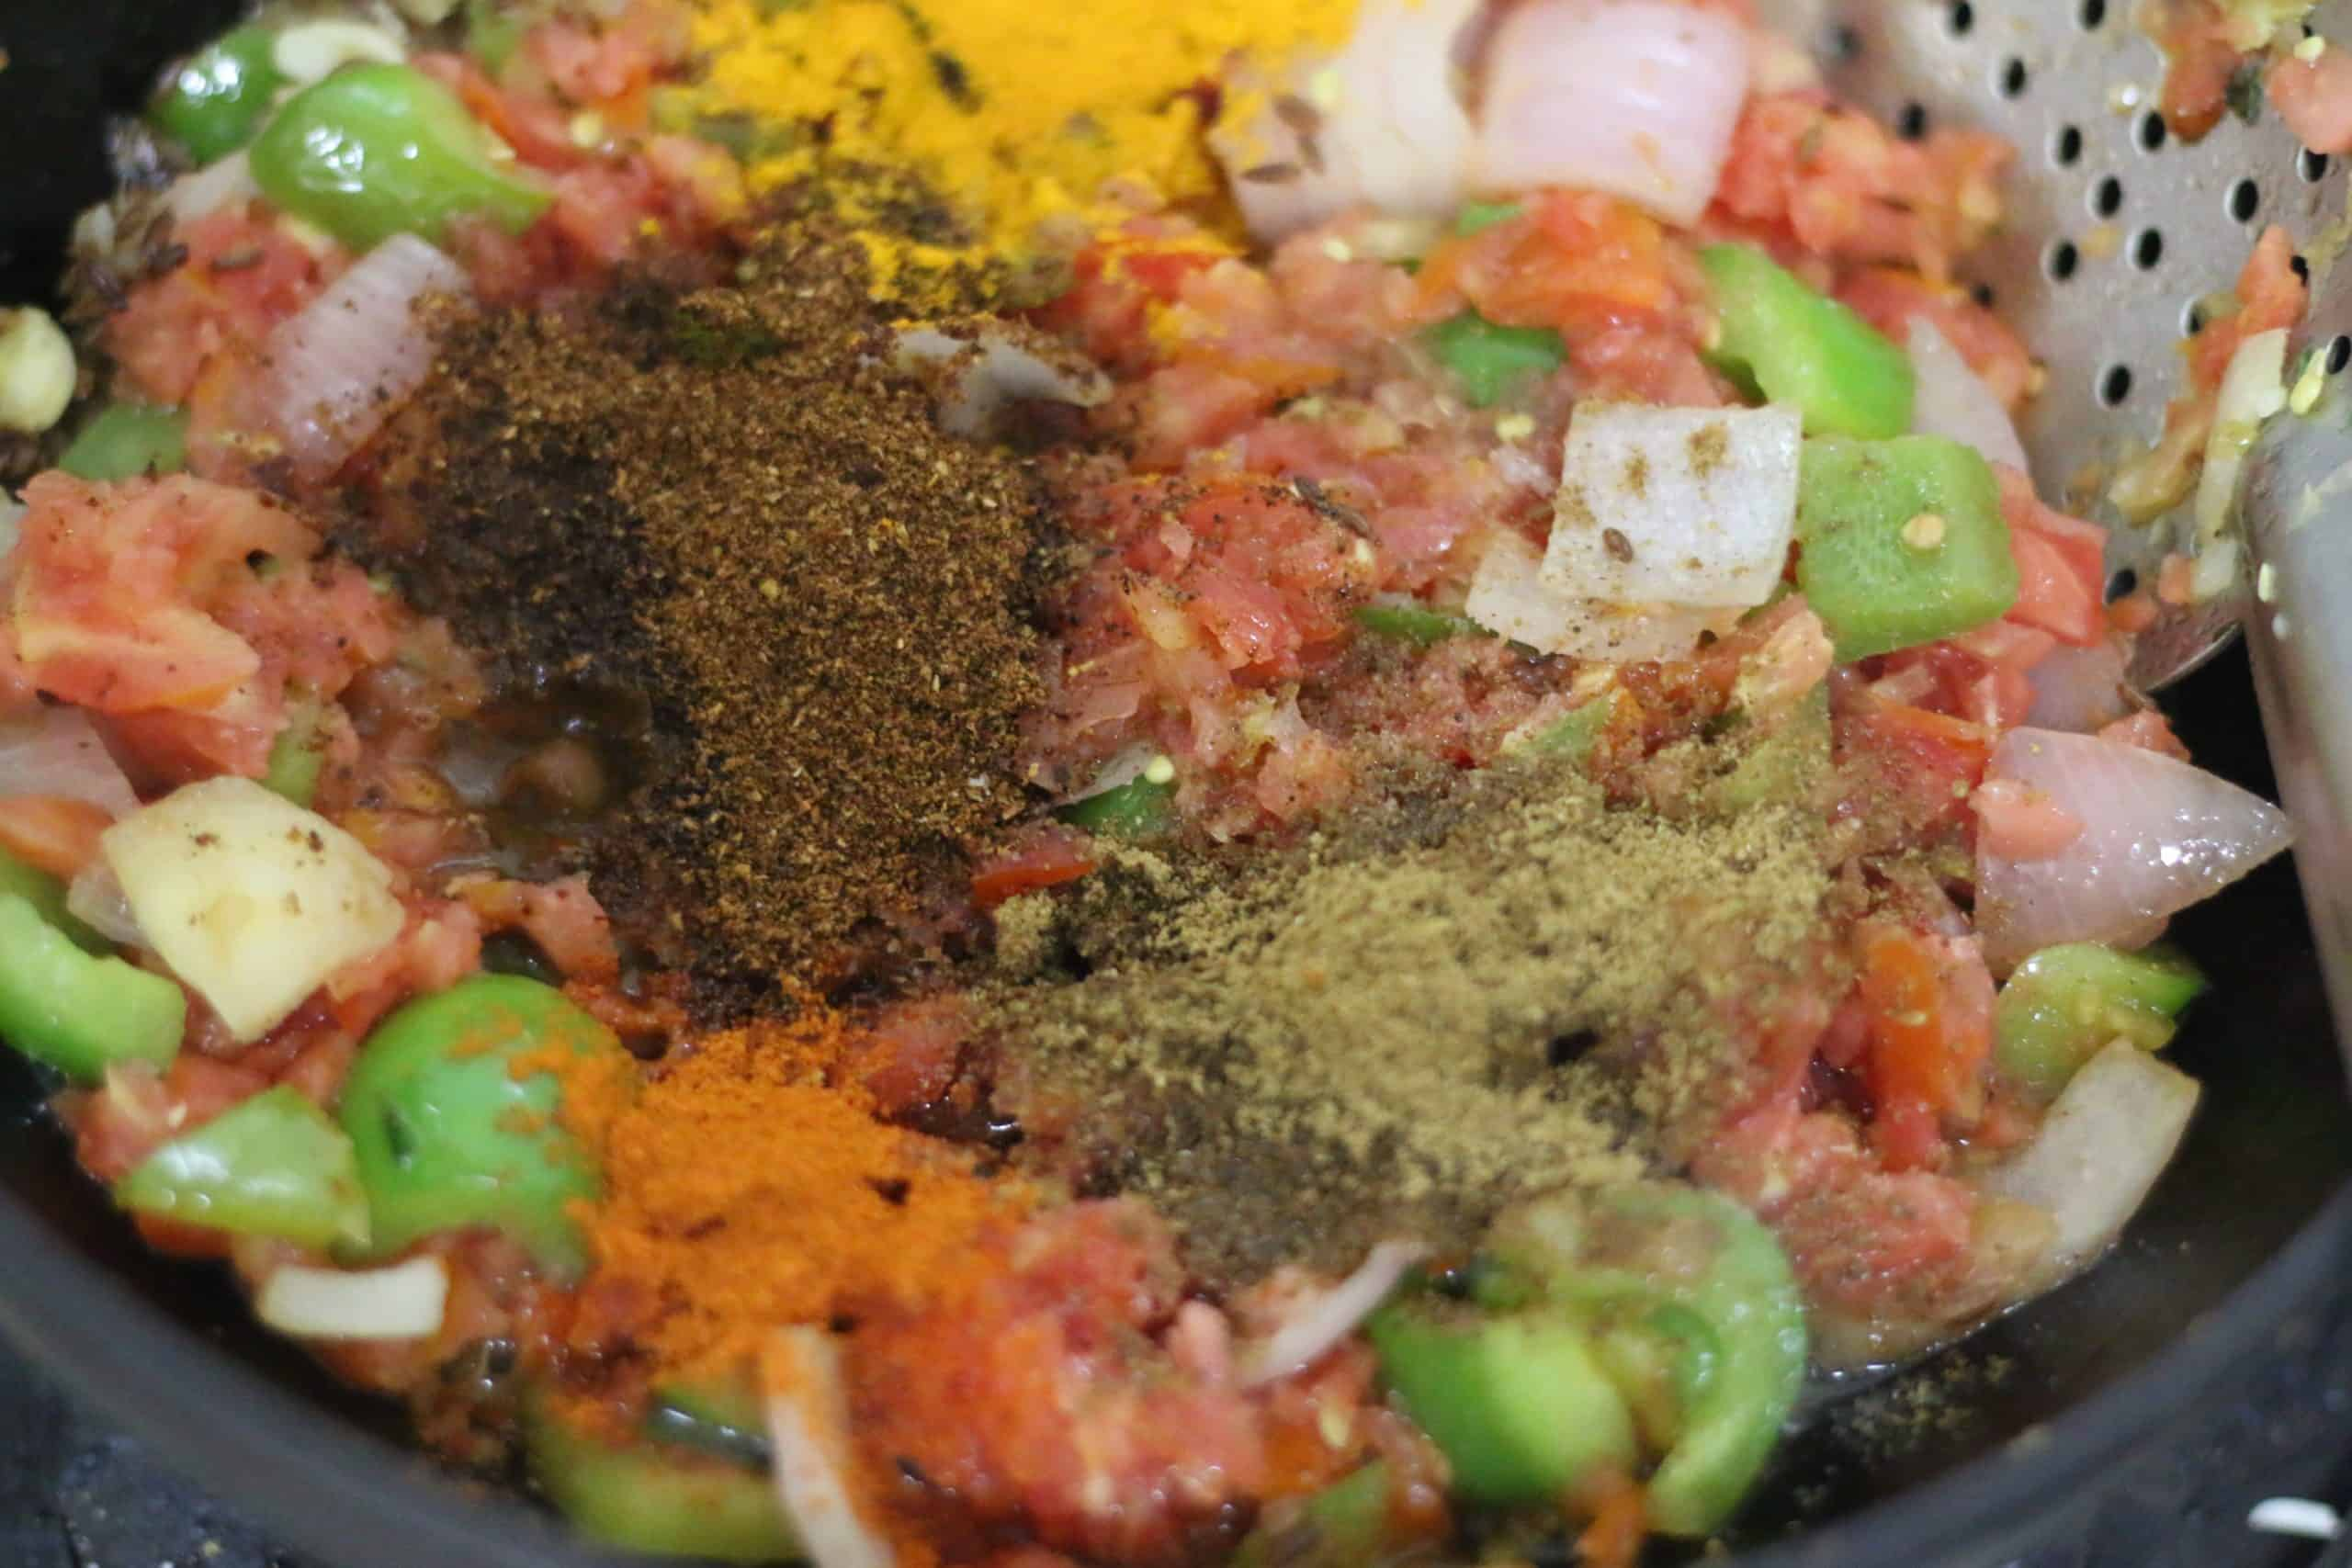 kadai masala, garam masala added to onion tomato base for kadai paneer recipe